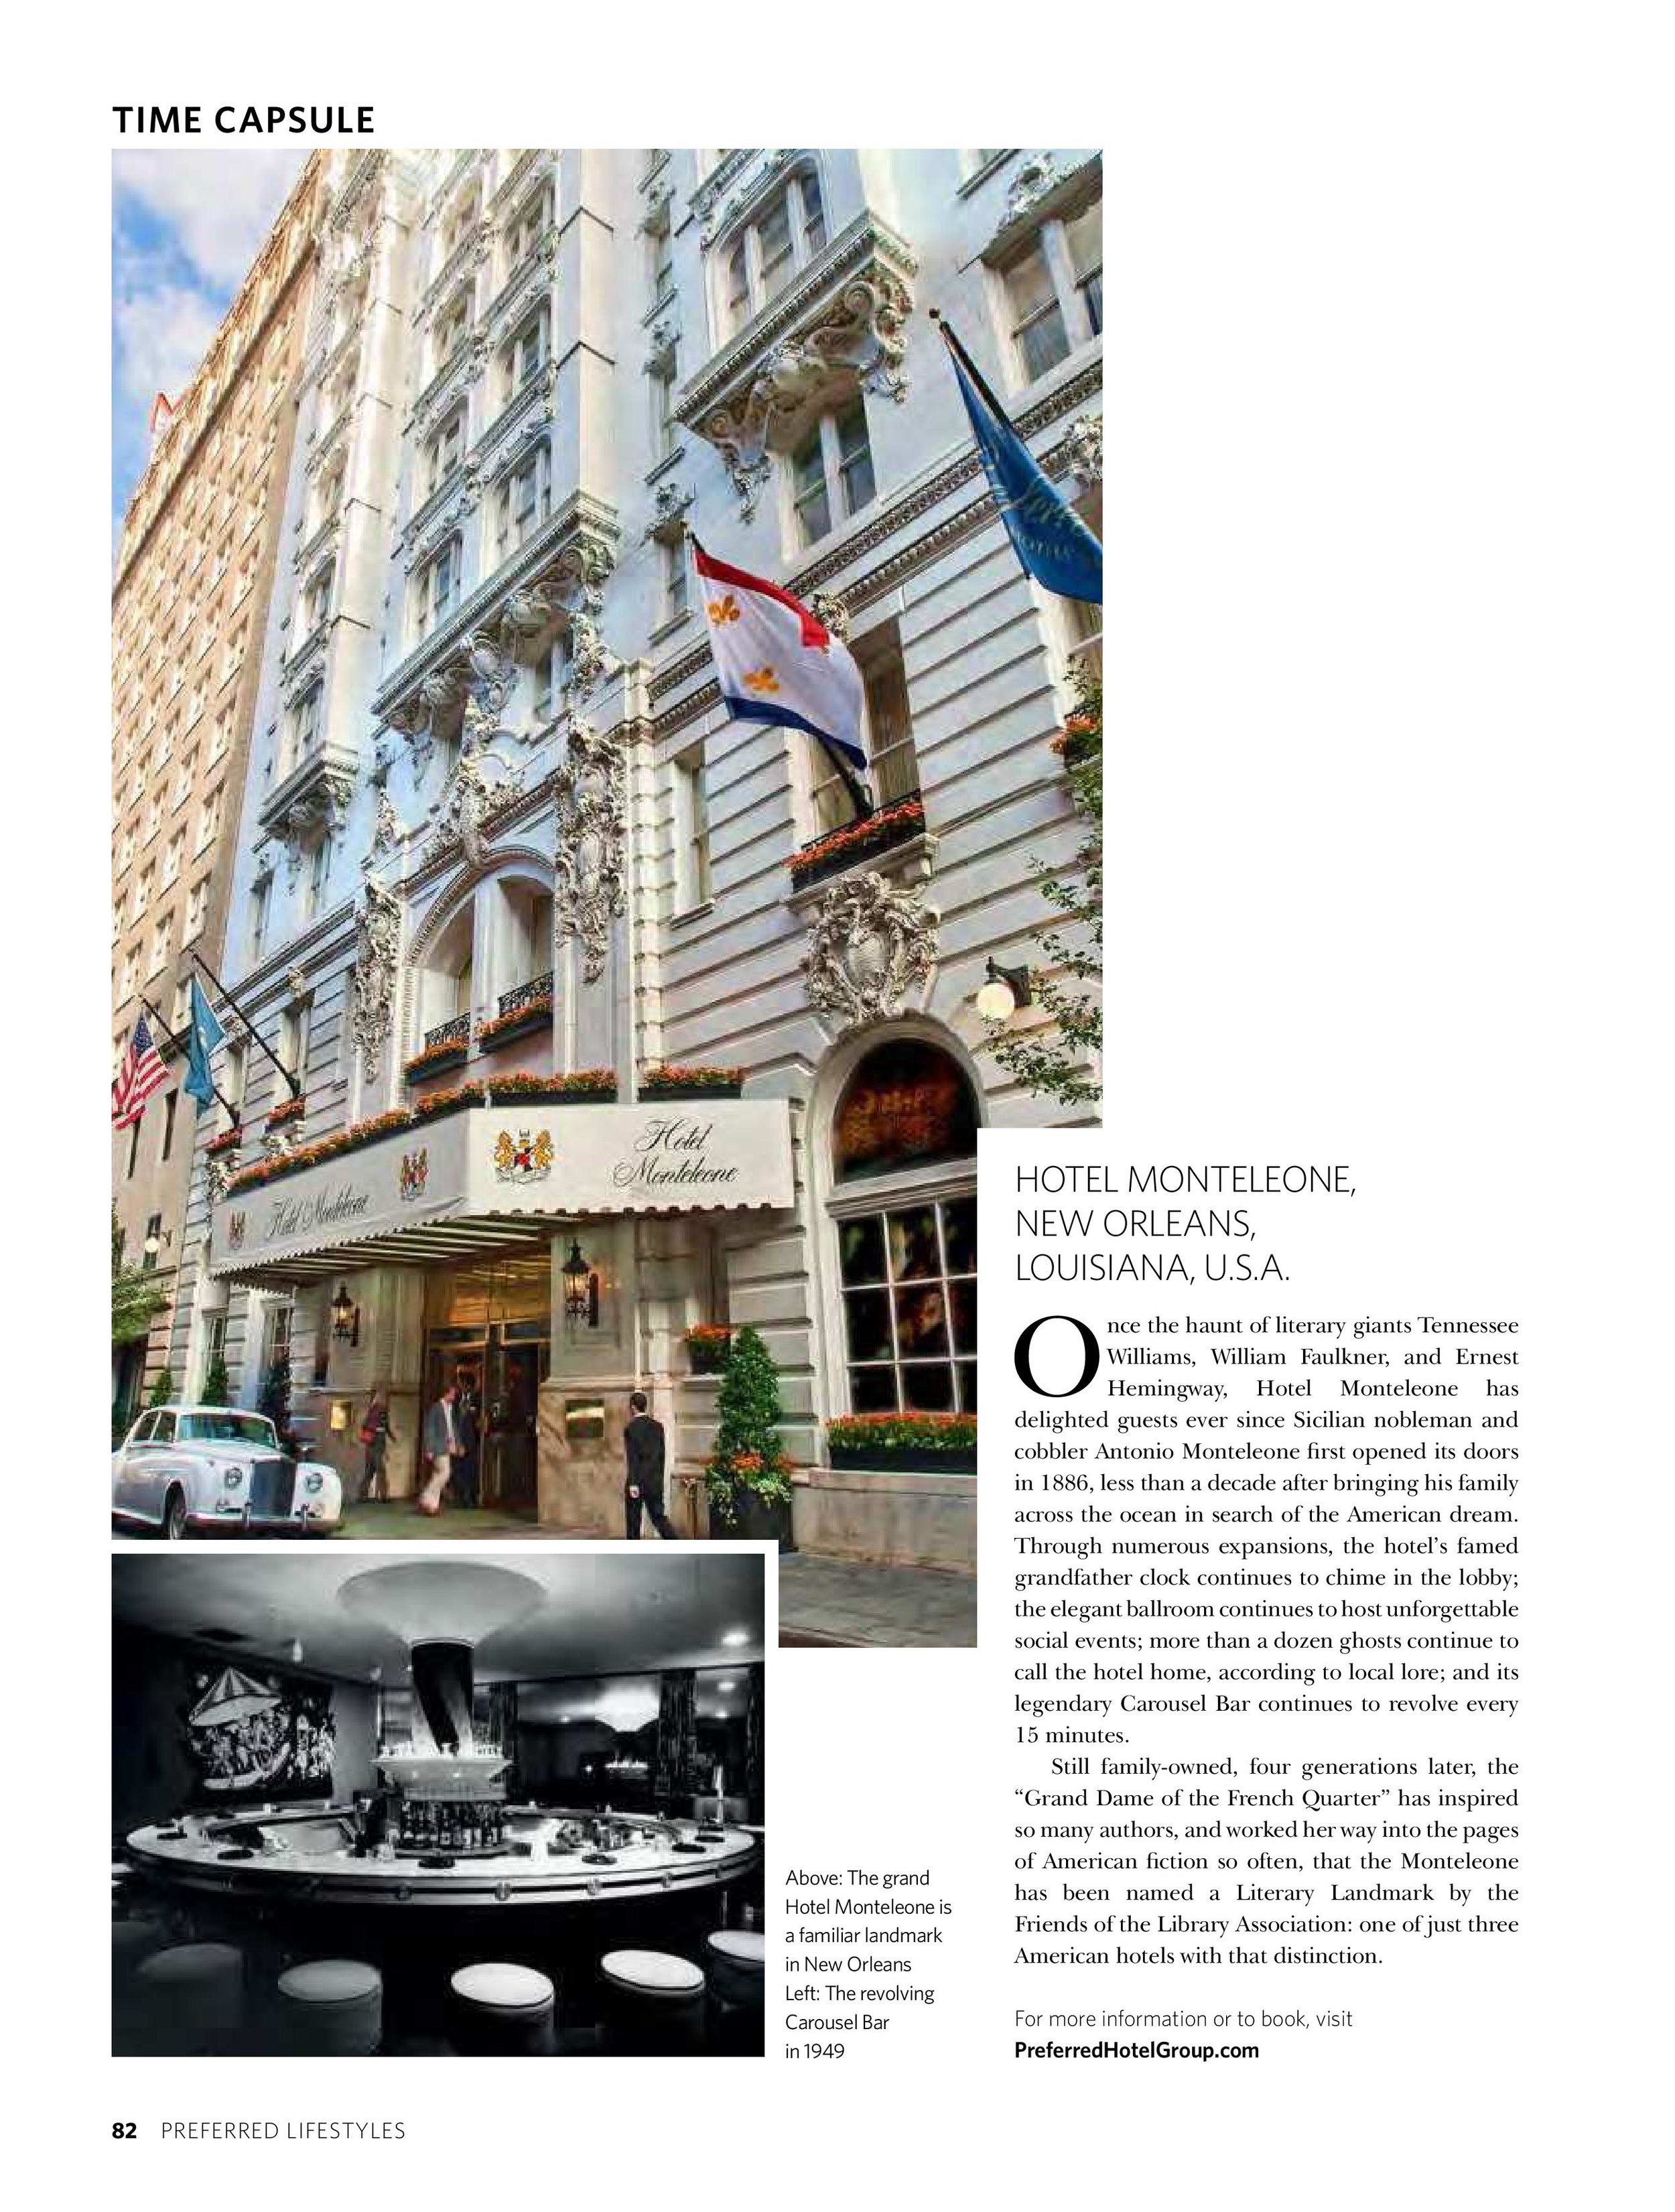 """Time Capsule: Hotel Monteleone,"" Preferred Lifestyles (Vol. 10, 2014)"